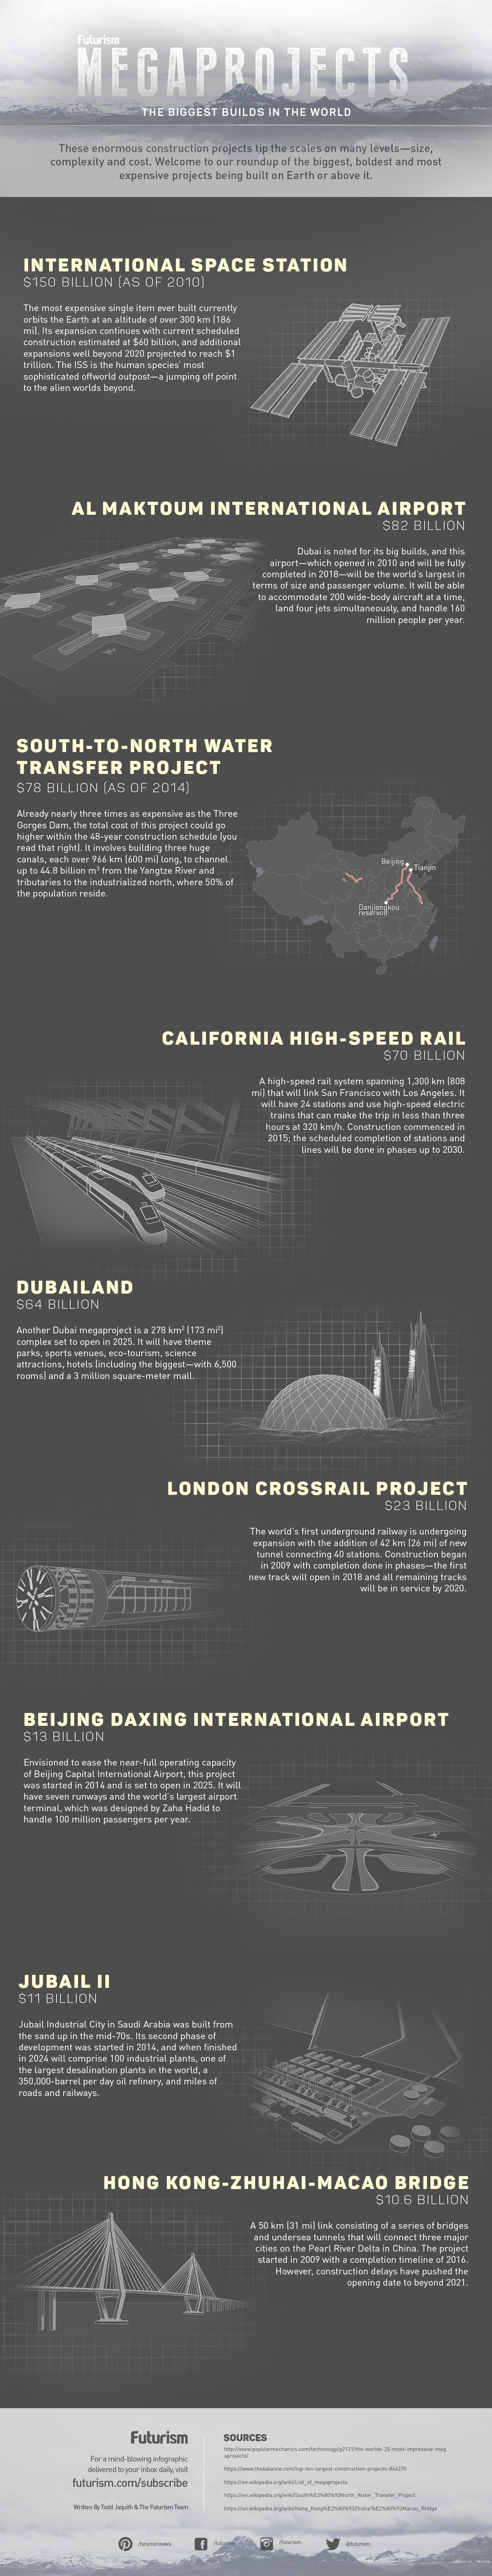 The World's Largest Megaprojects